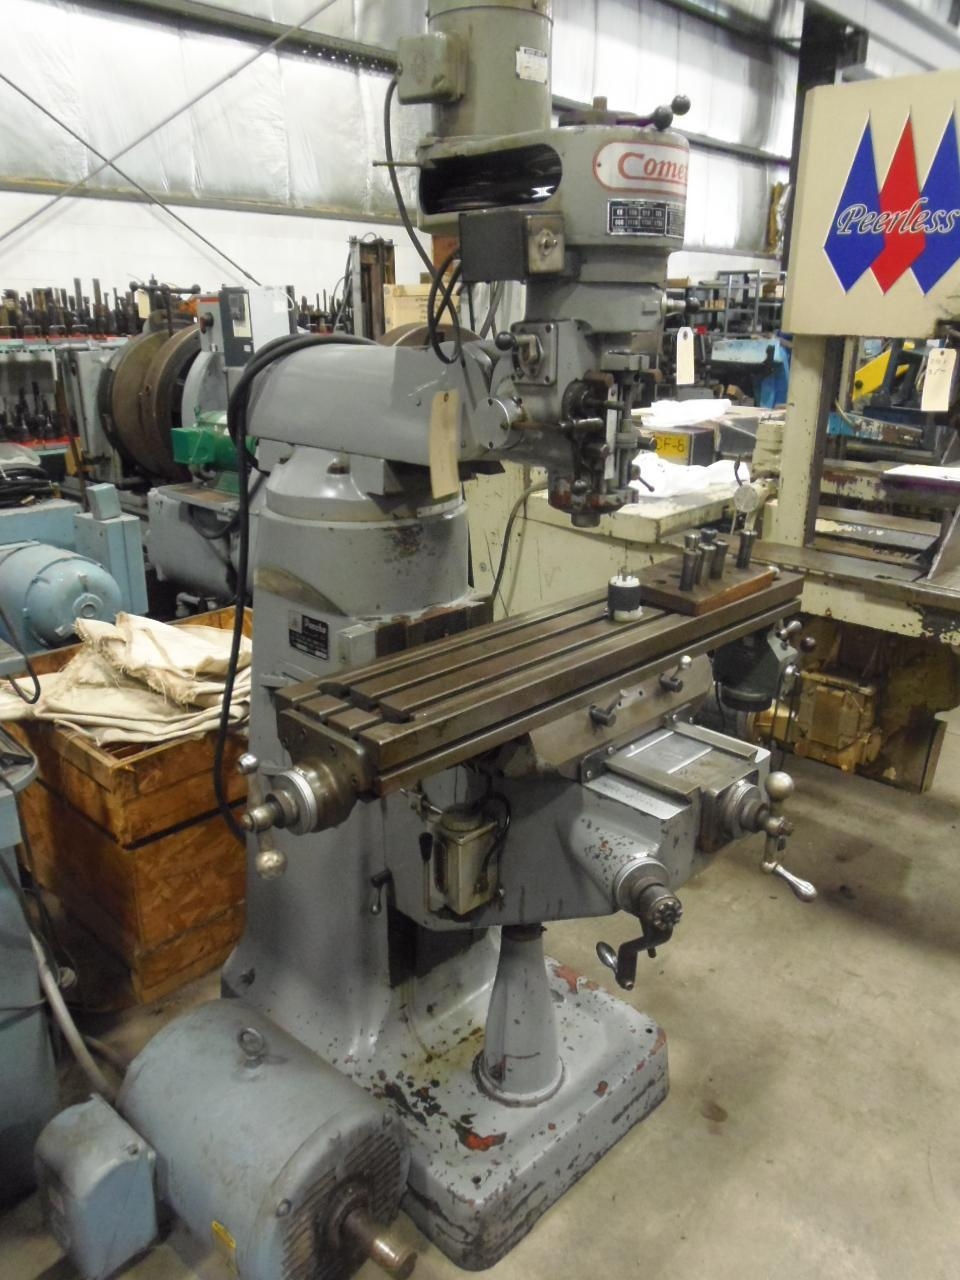 COMET VERTICAL MILL, 9 x 42 TABLE, POWER FEED, 2 HP, BELT PULLEY